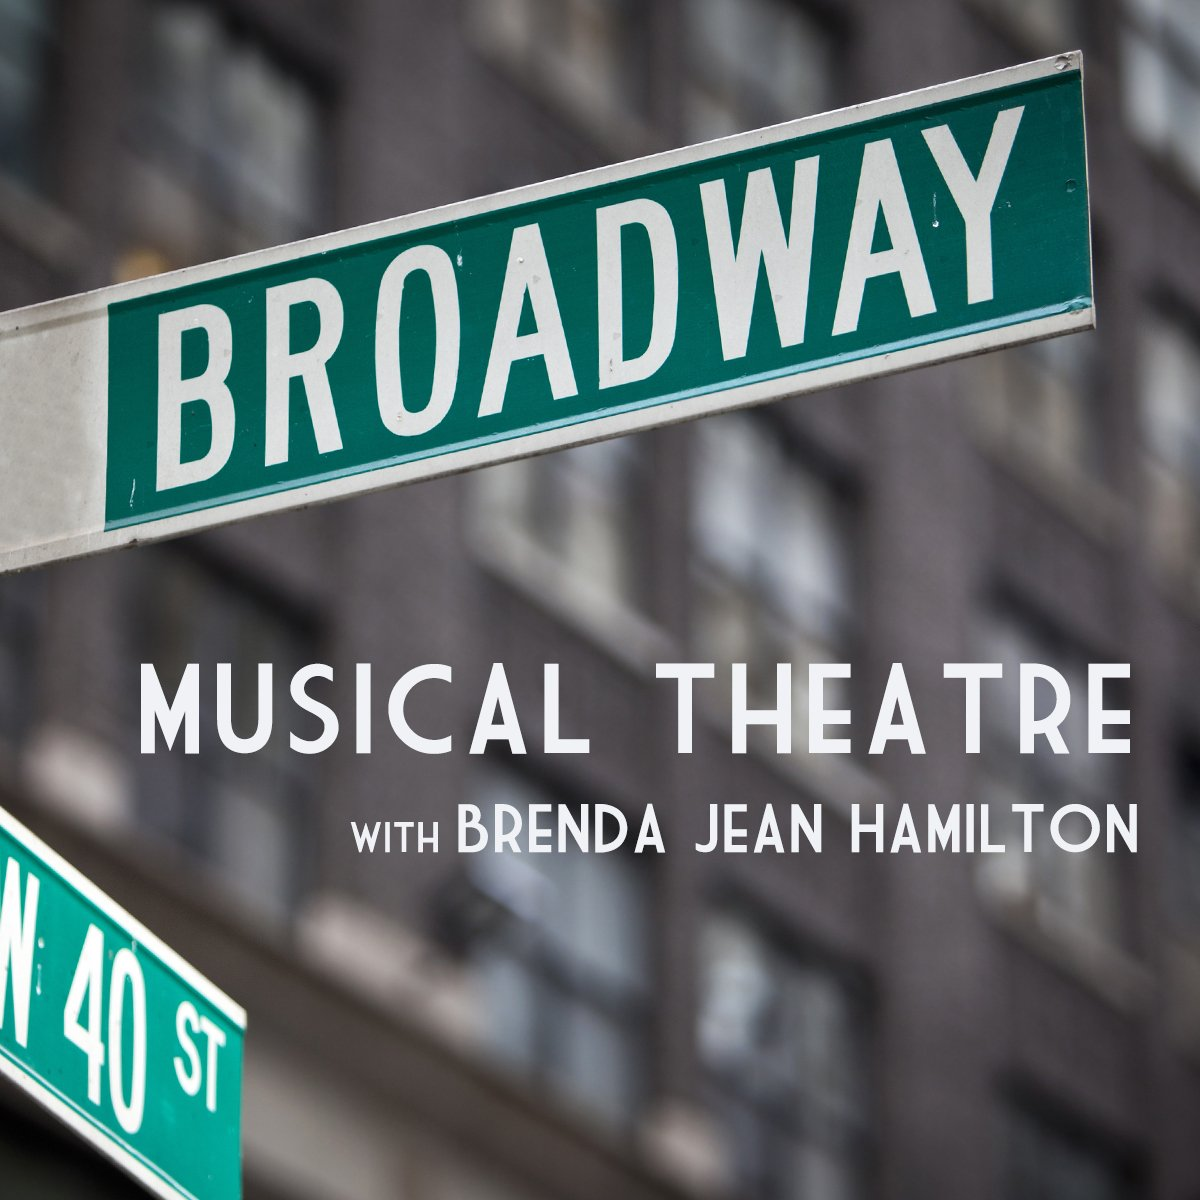 LSPA Broadway Musical Theatre Class for High School